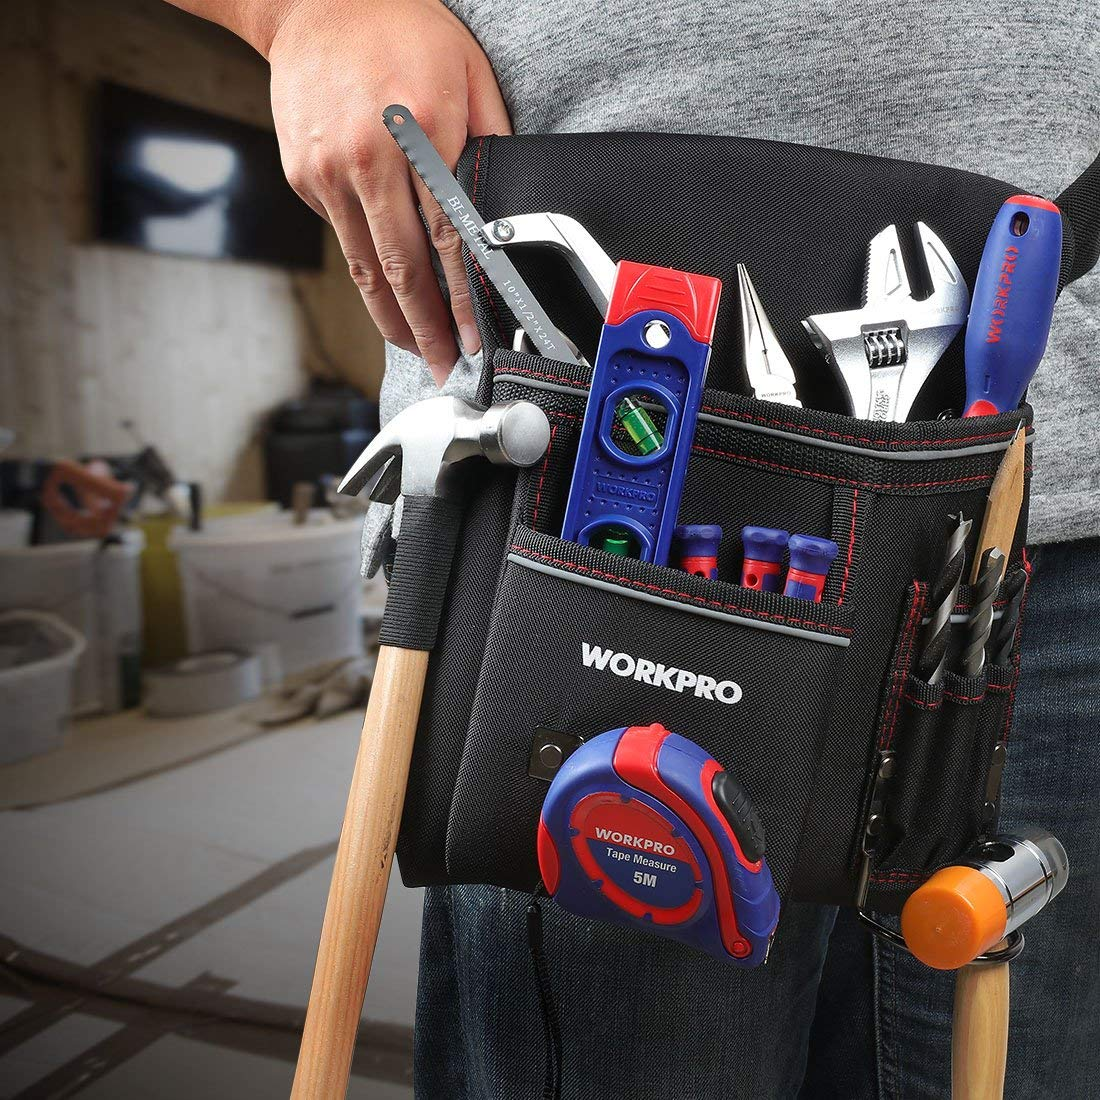 WORKPRO 10-inch Open Tote Tool Bag 25CM x22CM x28CM